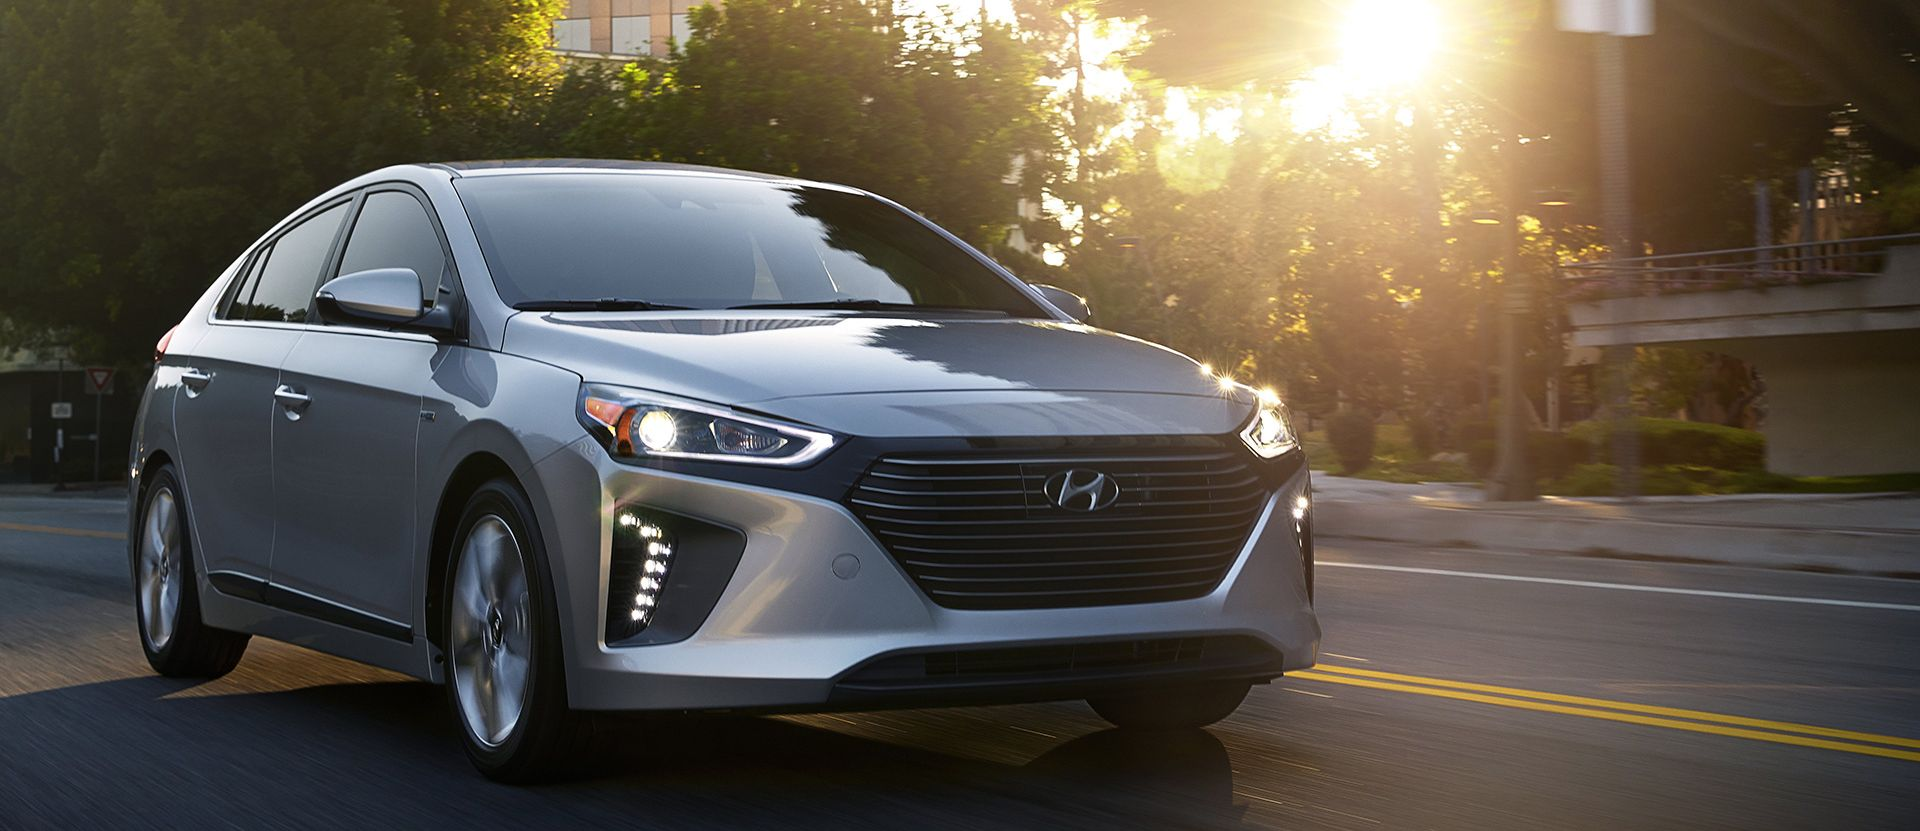 2017 Hyundai Ioniq Hybrid for Sale near Washington, DC